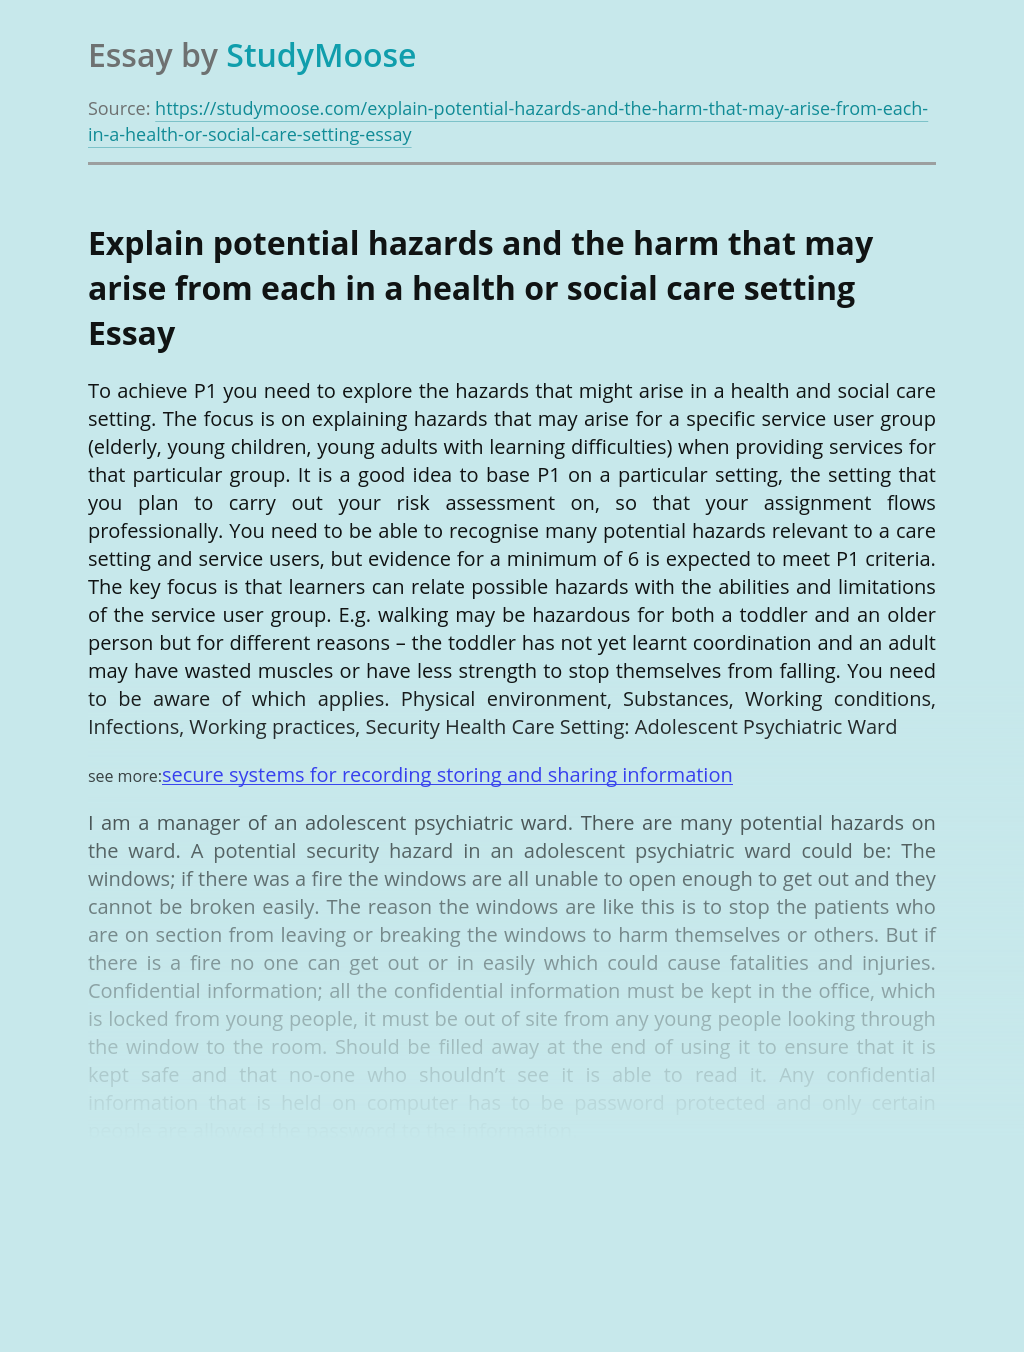 Explain Potential Hazards And The Harm That May Arise From Each In A Health Or Social Care Setting